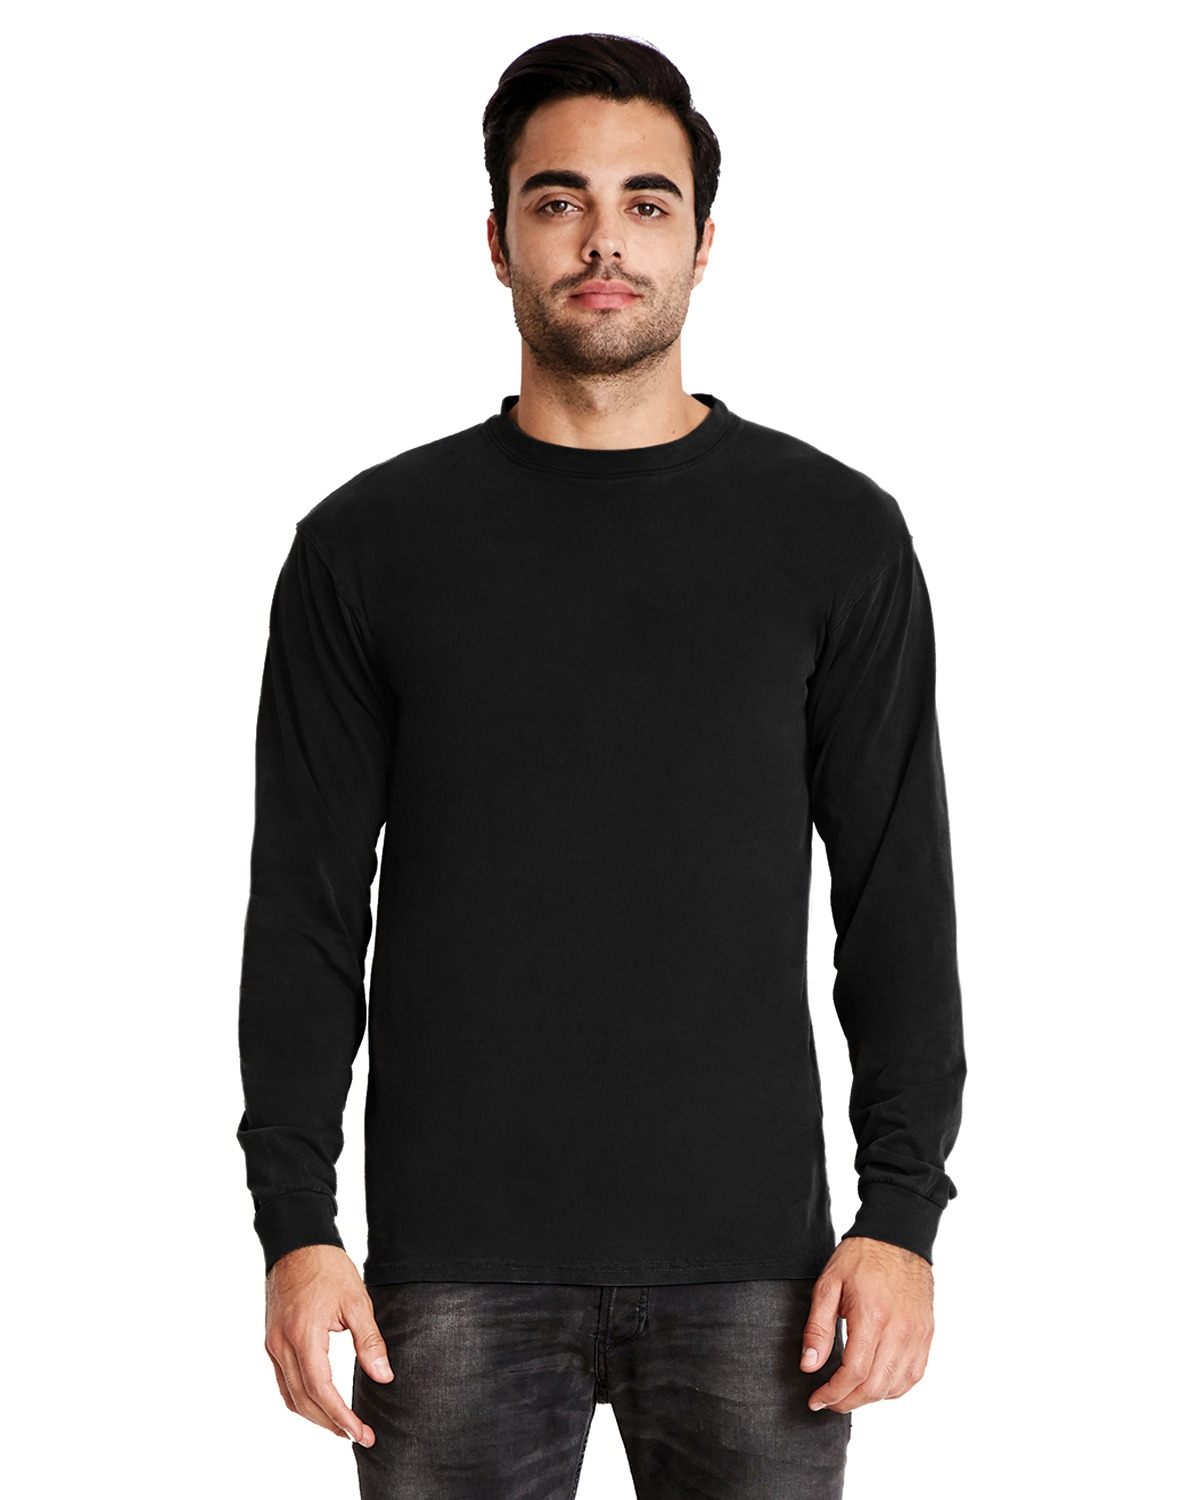 Next Level 7401 - Inspired Dye Long Sleeve Crew